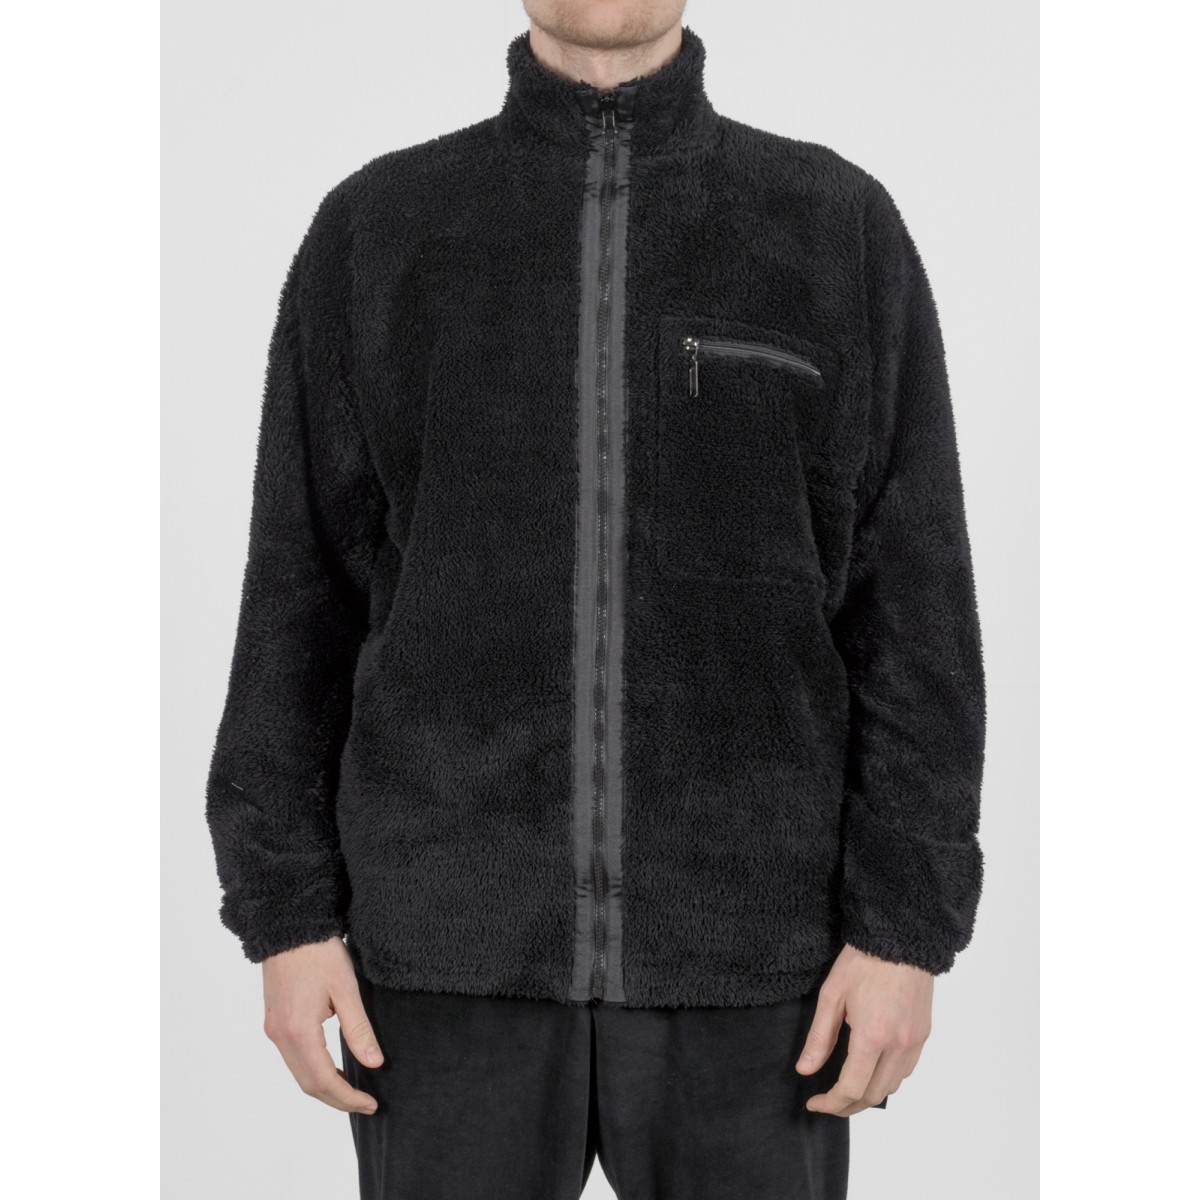 TRINITAS World Jacket Black